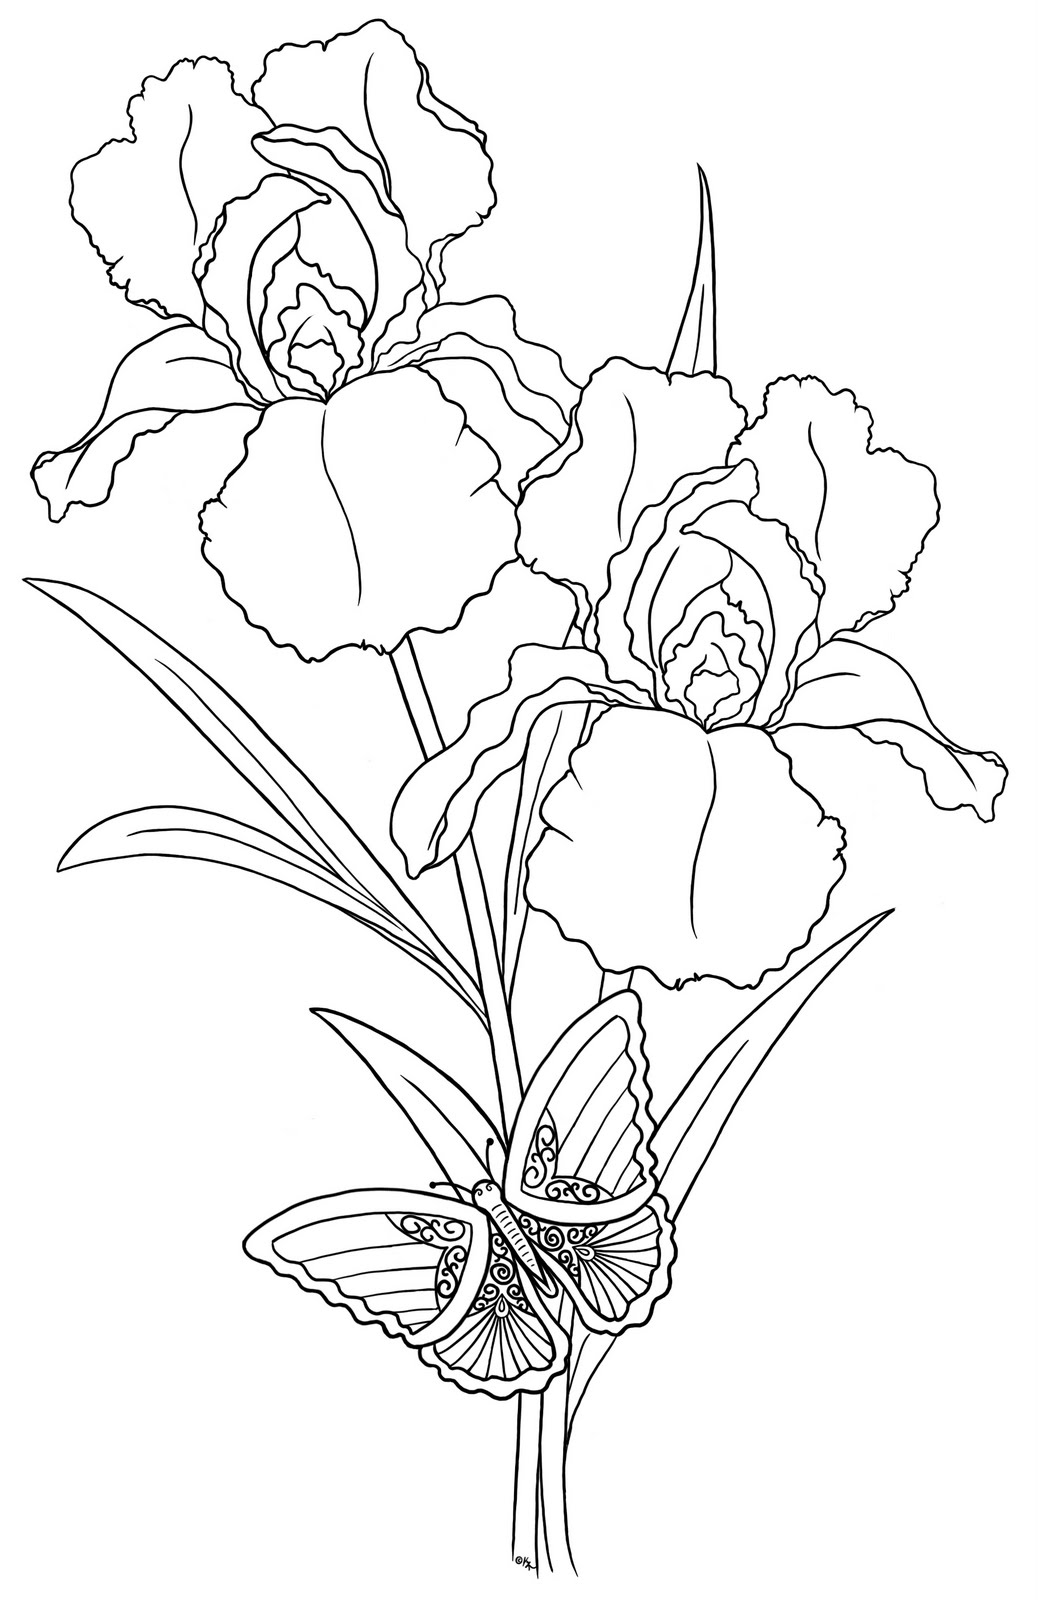 Line Drawing Of Iris Flower : Image gallery iris flower outline